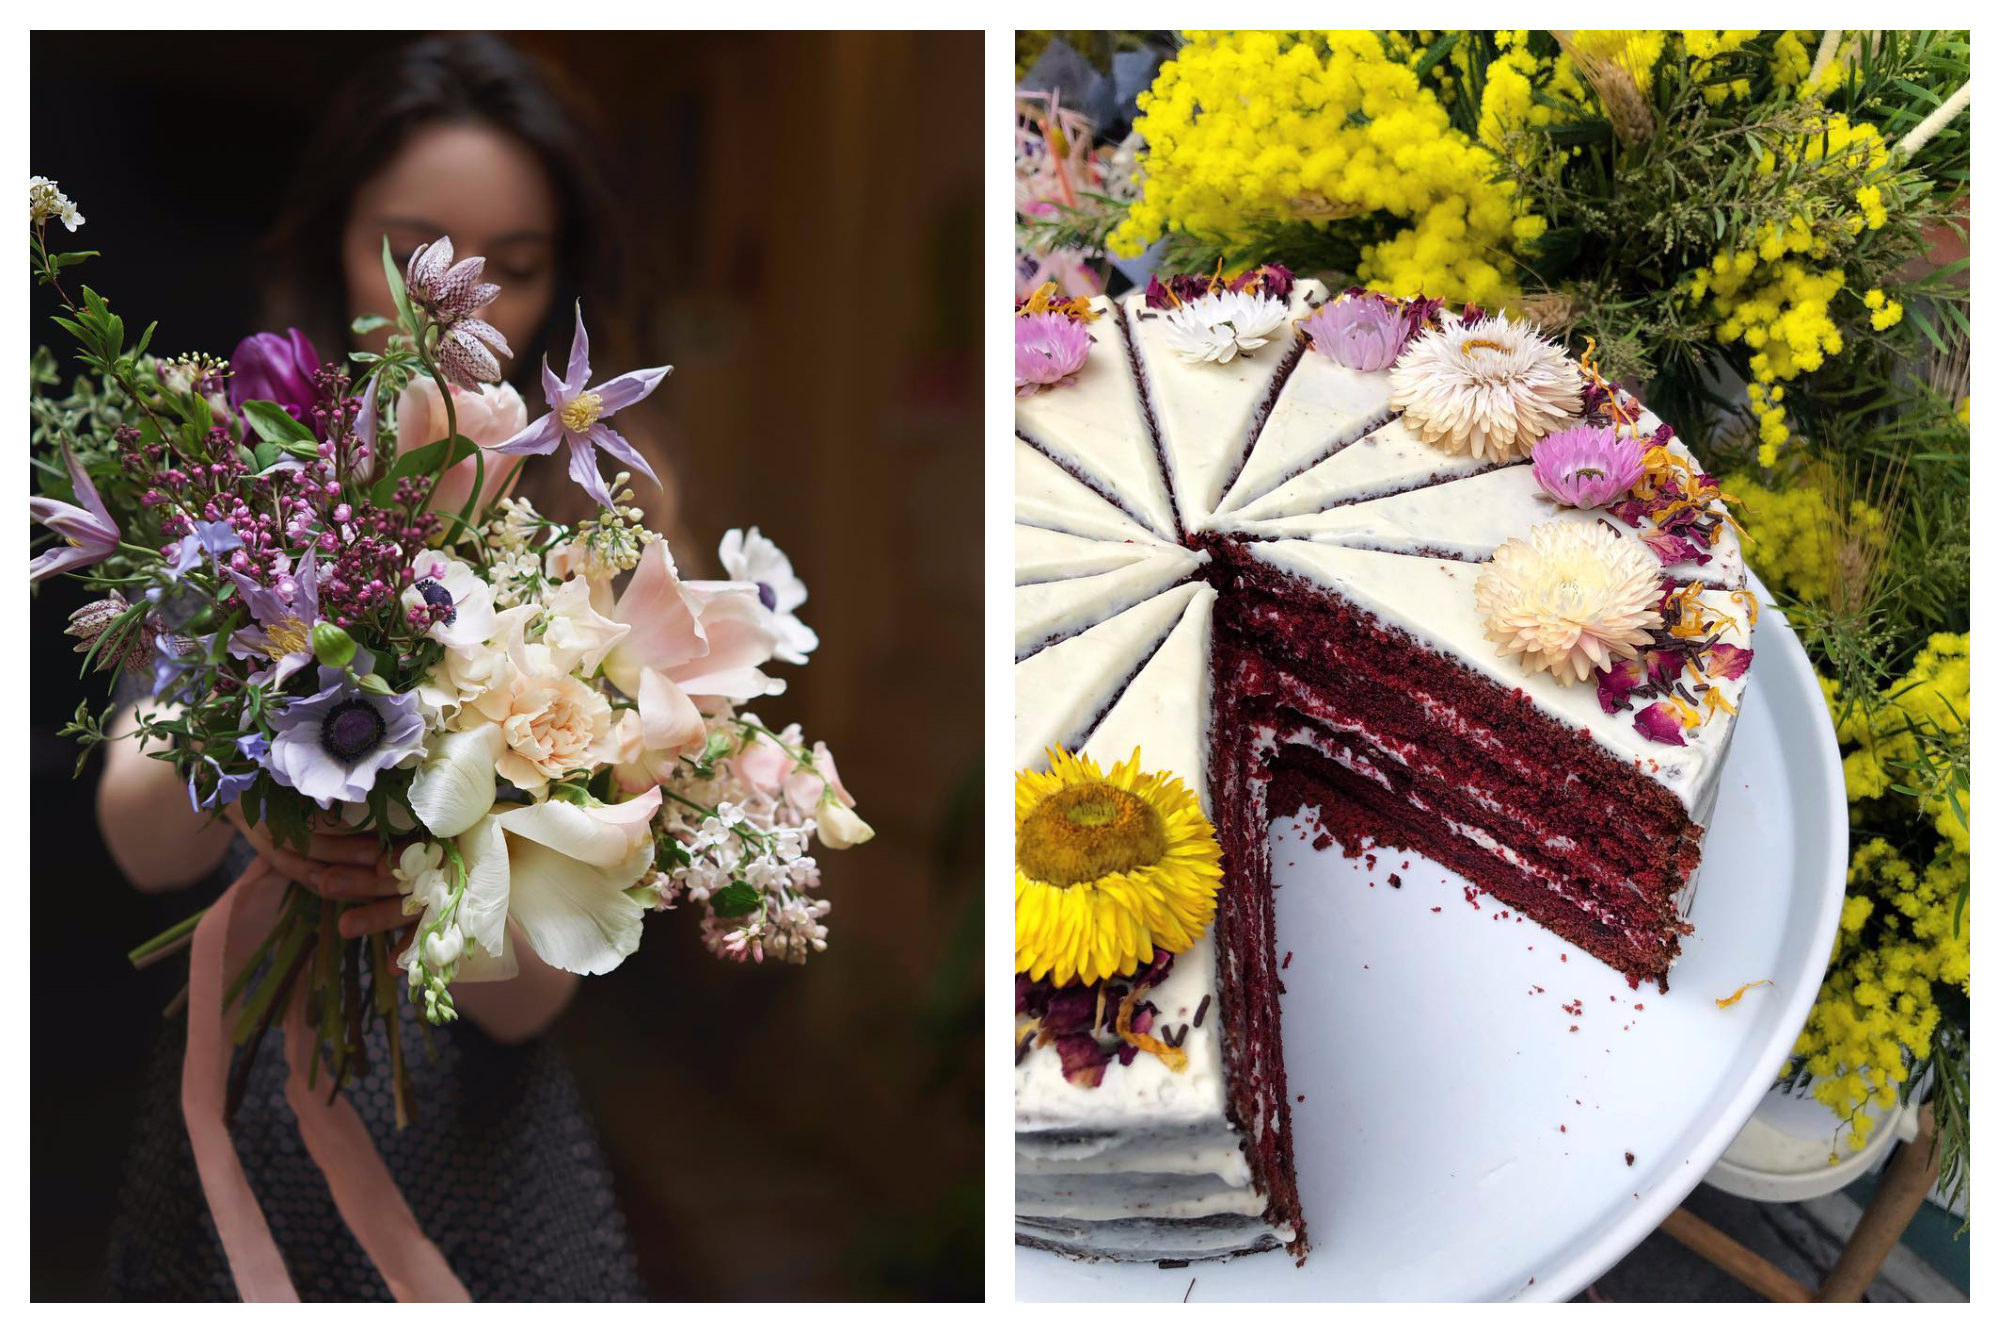 Peonies café in Paris is a great place to work as it's pleasant to be surrounded by bucolic bunches of flowers (left) and to be able to dig into delicious cakes (right).